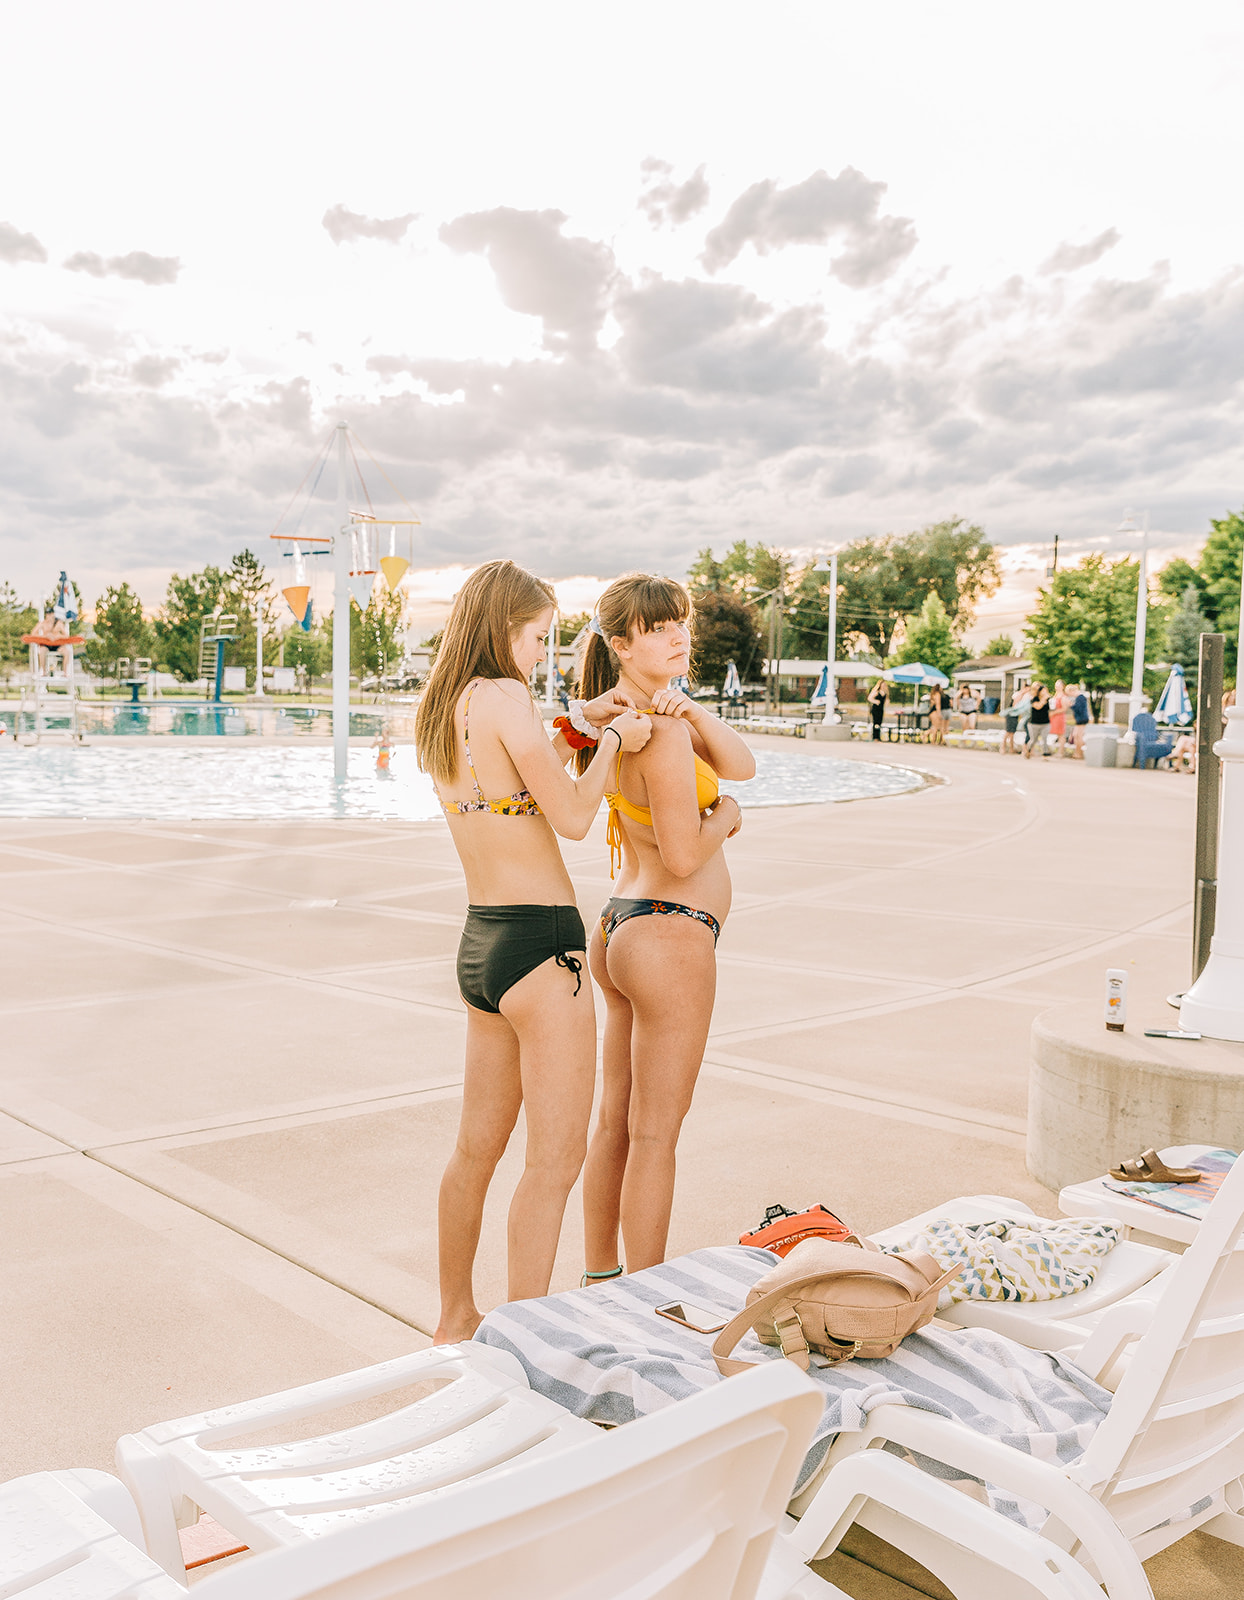 pool party professional pictures event photos commercial photographer in logan utah nani swimwear bella alder photography swimming dance part pictures #bellaalderphoto #poolparty #professionalevent #eventinspo #poolpartyinspo #commercialevent #commercialphotography